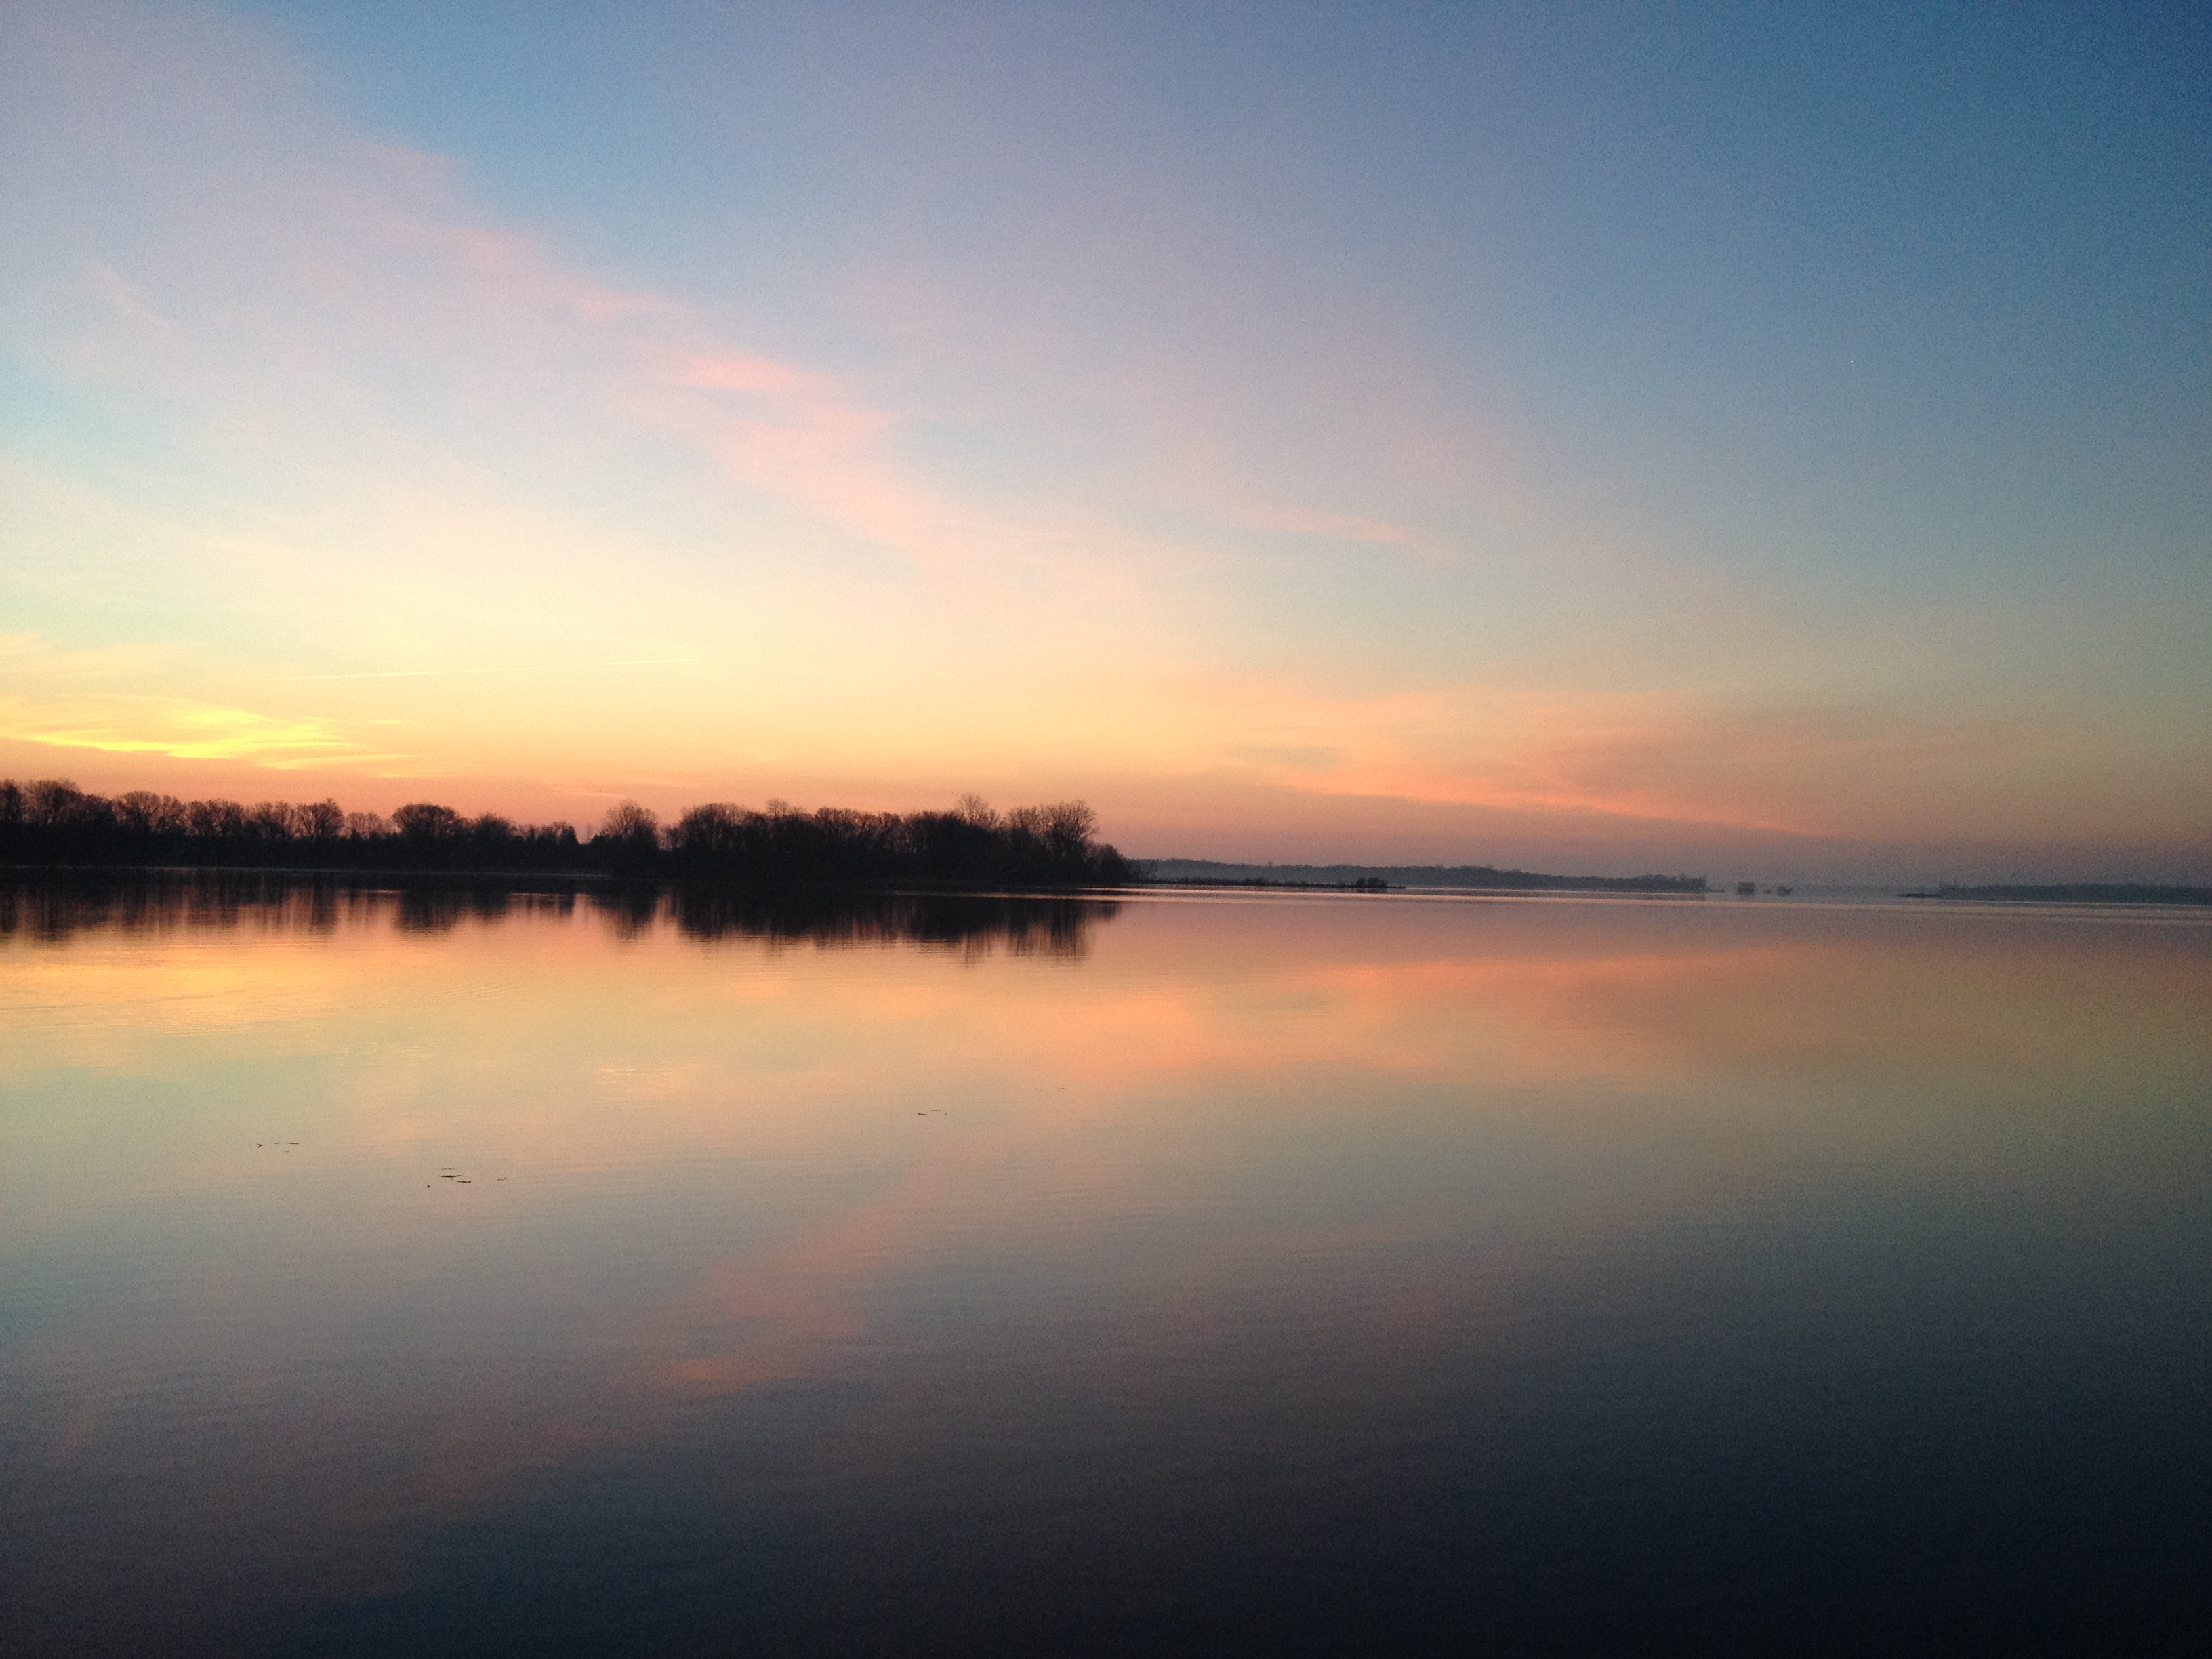 Sunrise over the Bay of Quinte